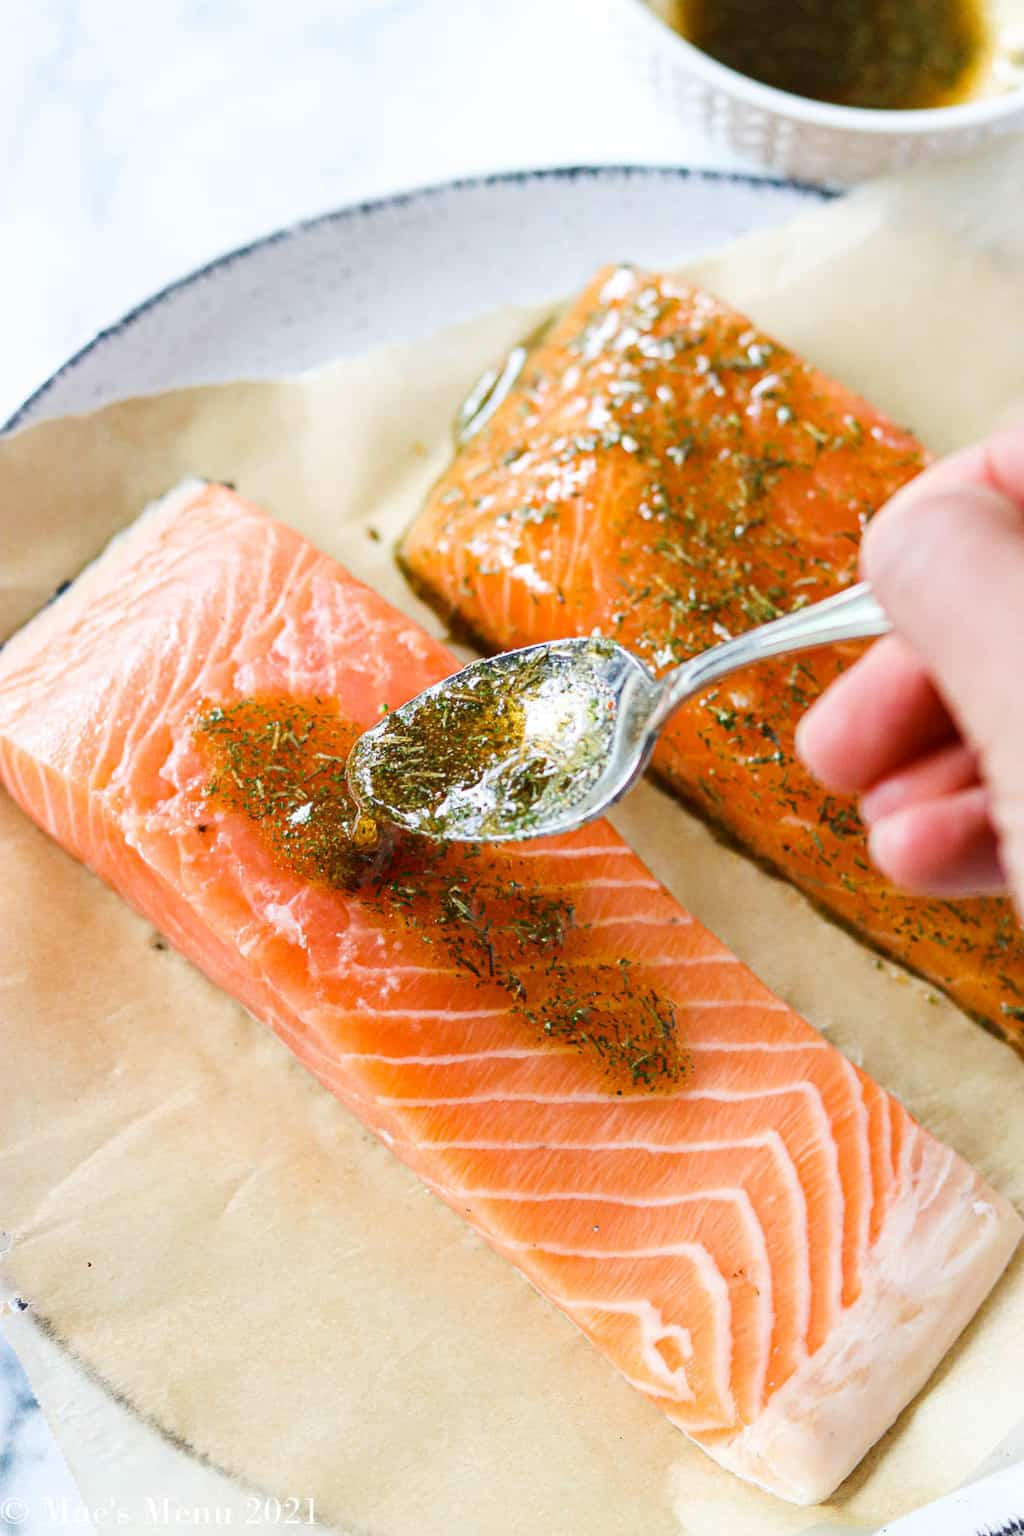 Drizzling the herb & maple glaze over the pieces of salmon